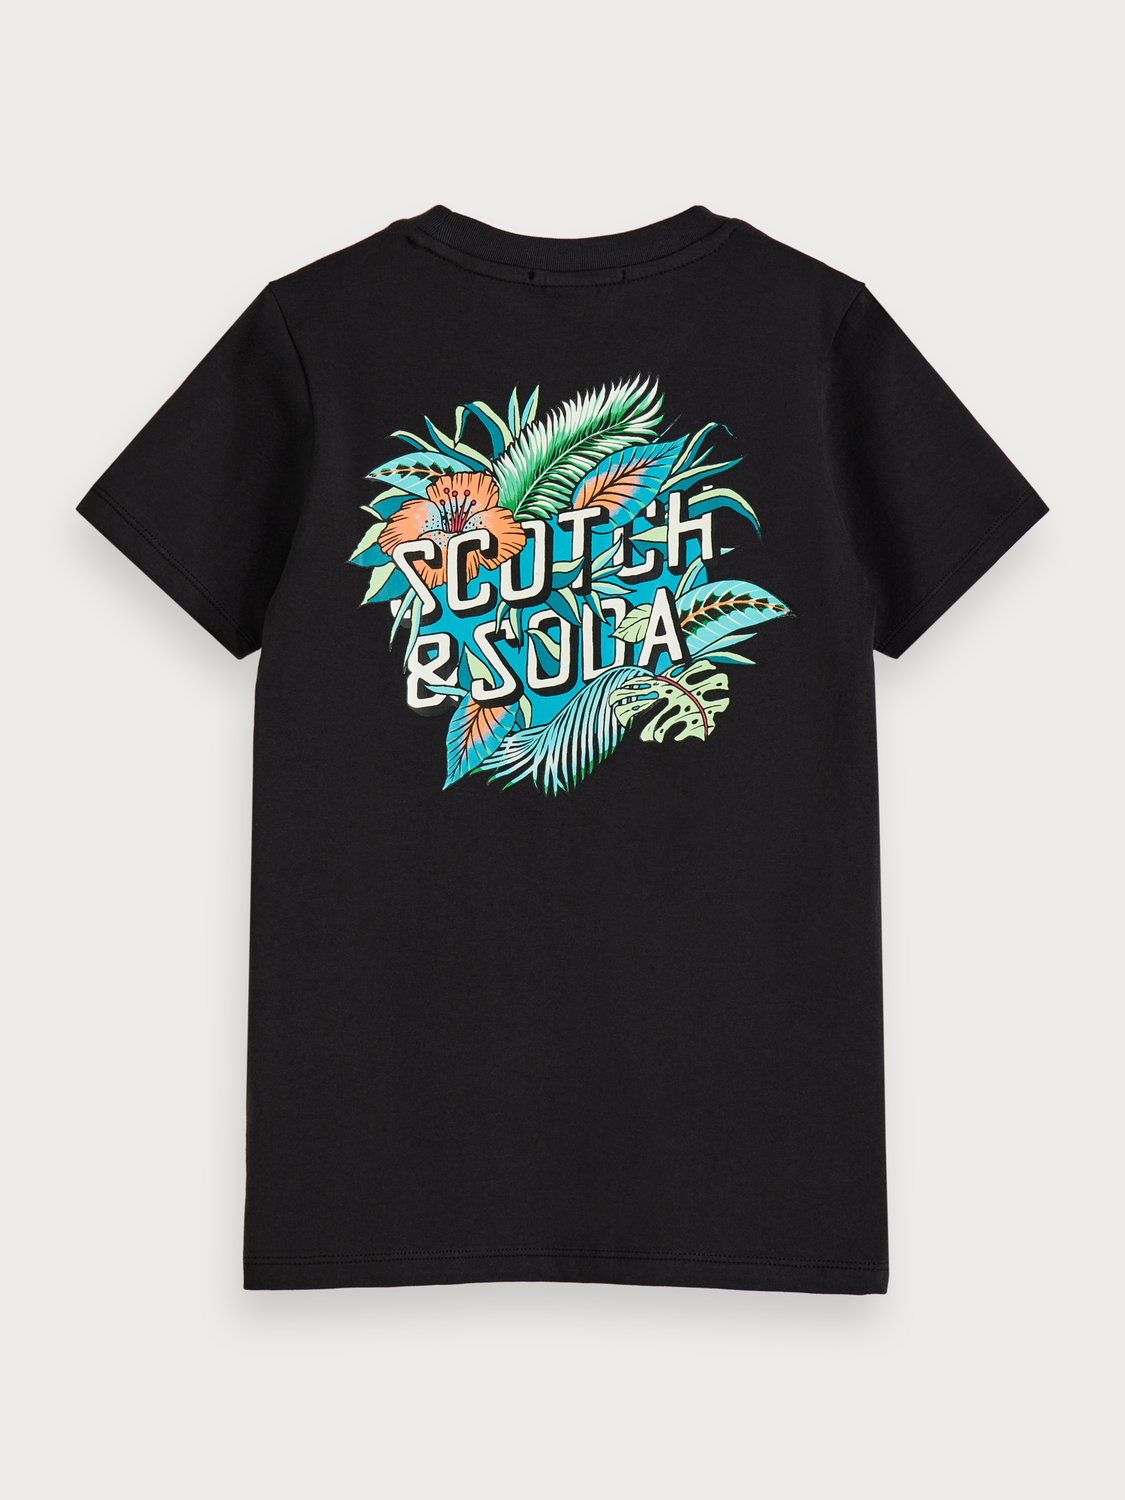 Boys Colourful Artwork T-Shirt